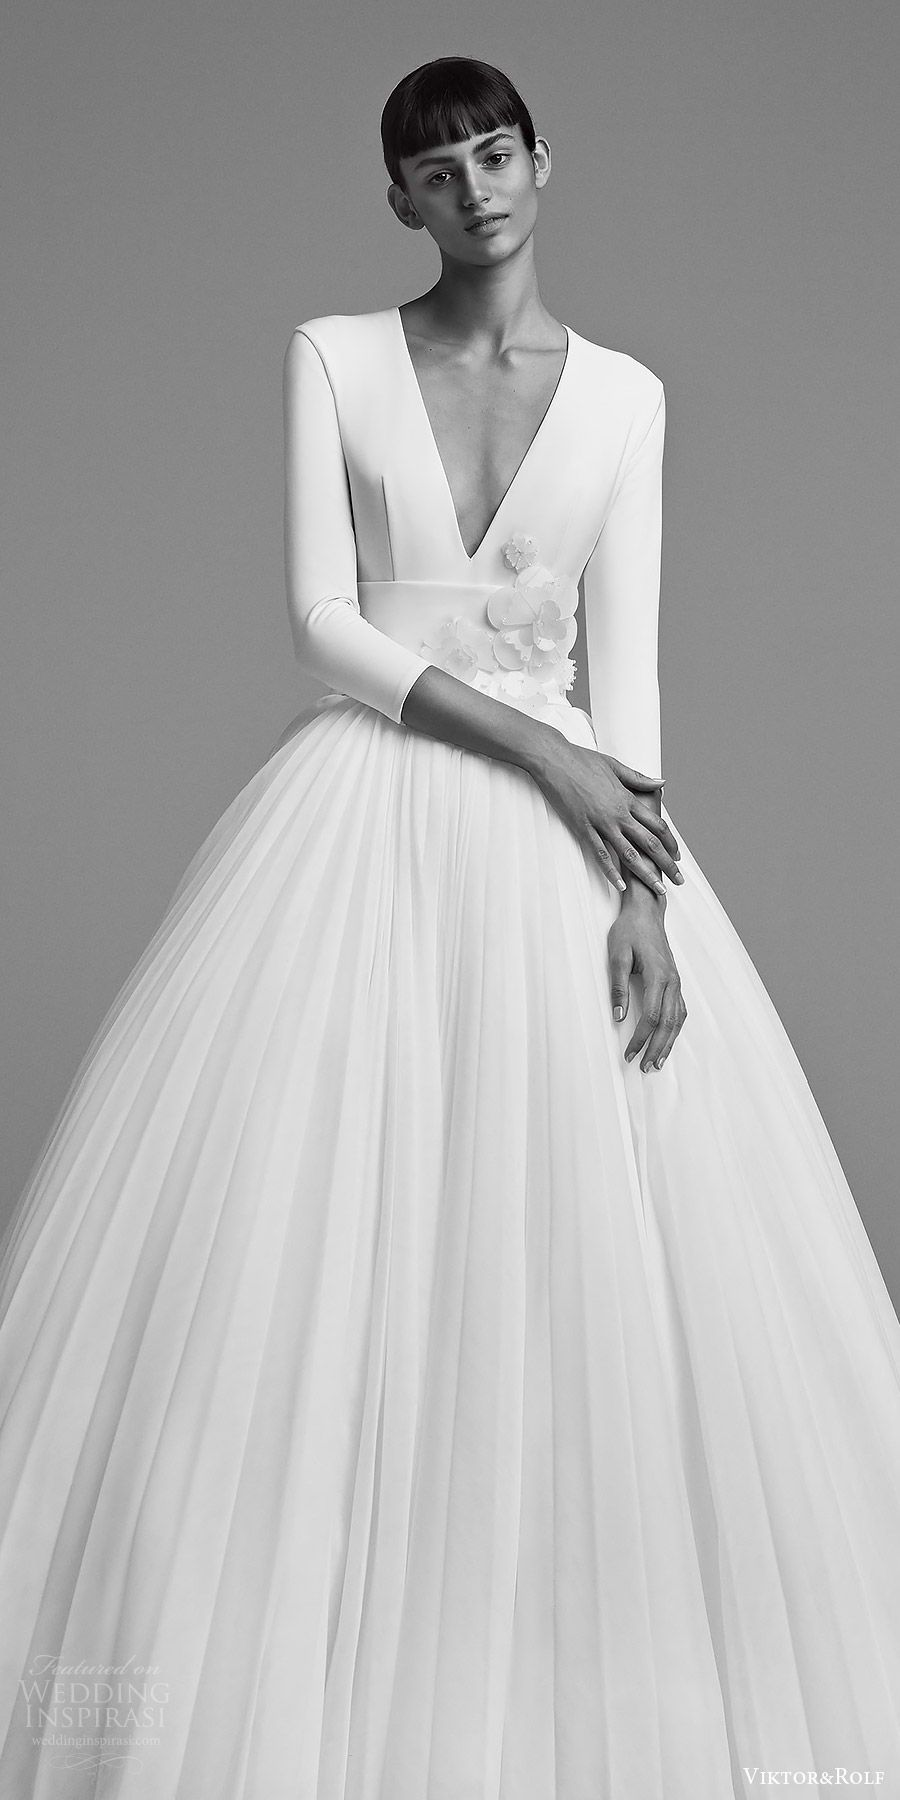 f619a75174f9 viktor and rolf fall 2018 bridal long sleeves deep v neck embellished waist  ball gown wedding dress (22) zv elegant romantic modern minimal -- Viktor